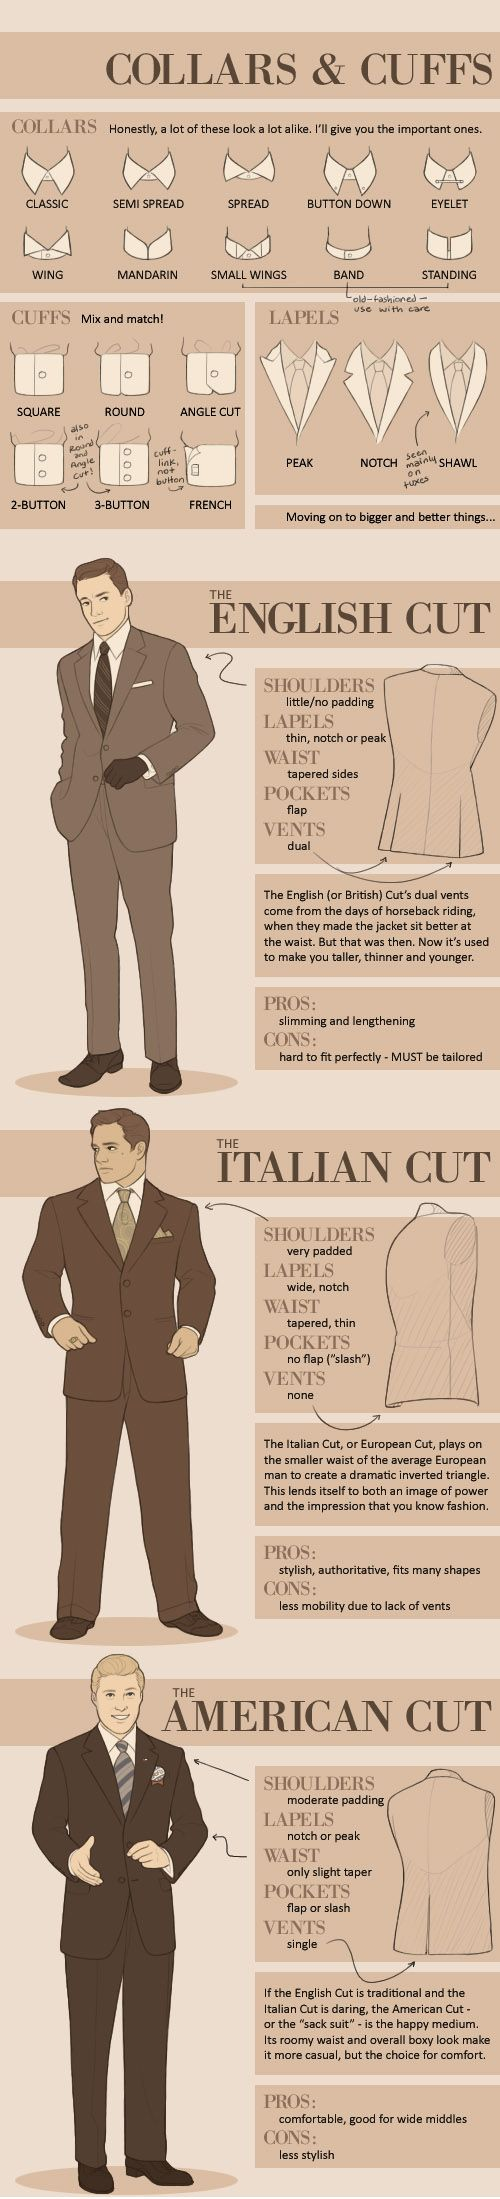 AK's Guide to Suits - - covers collars, cuffs, ties and the differences between English Cut, Italian Cup, American Cut and the Tuxedo . . . Great Resource